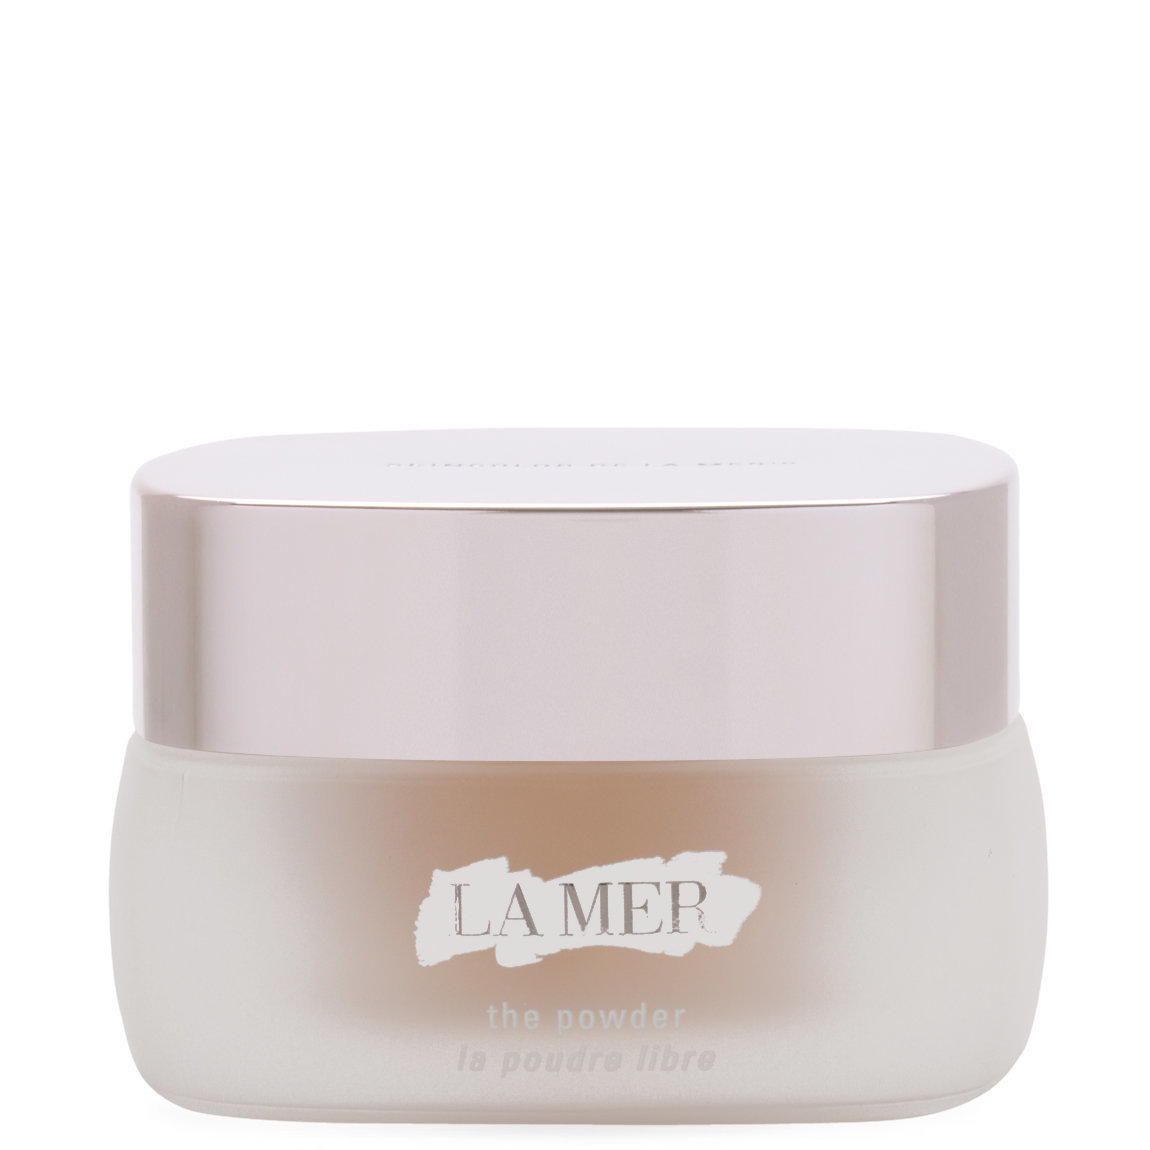 La Mer The Powder alternative view 1 - product swatch.